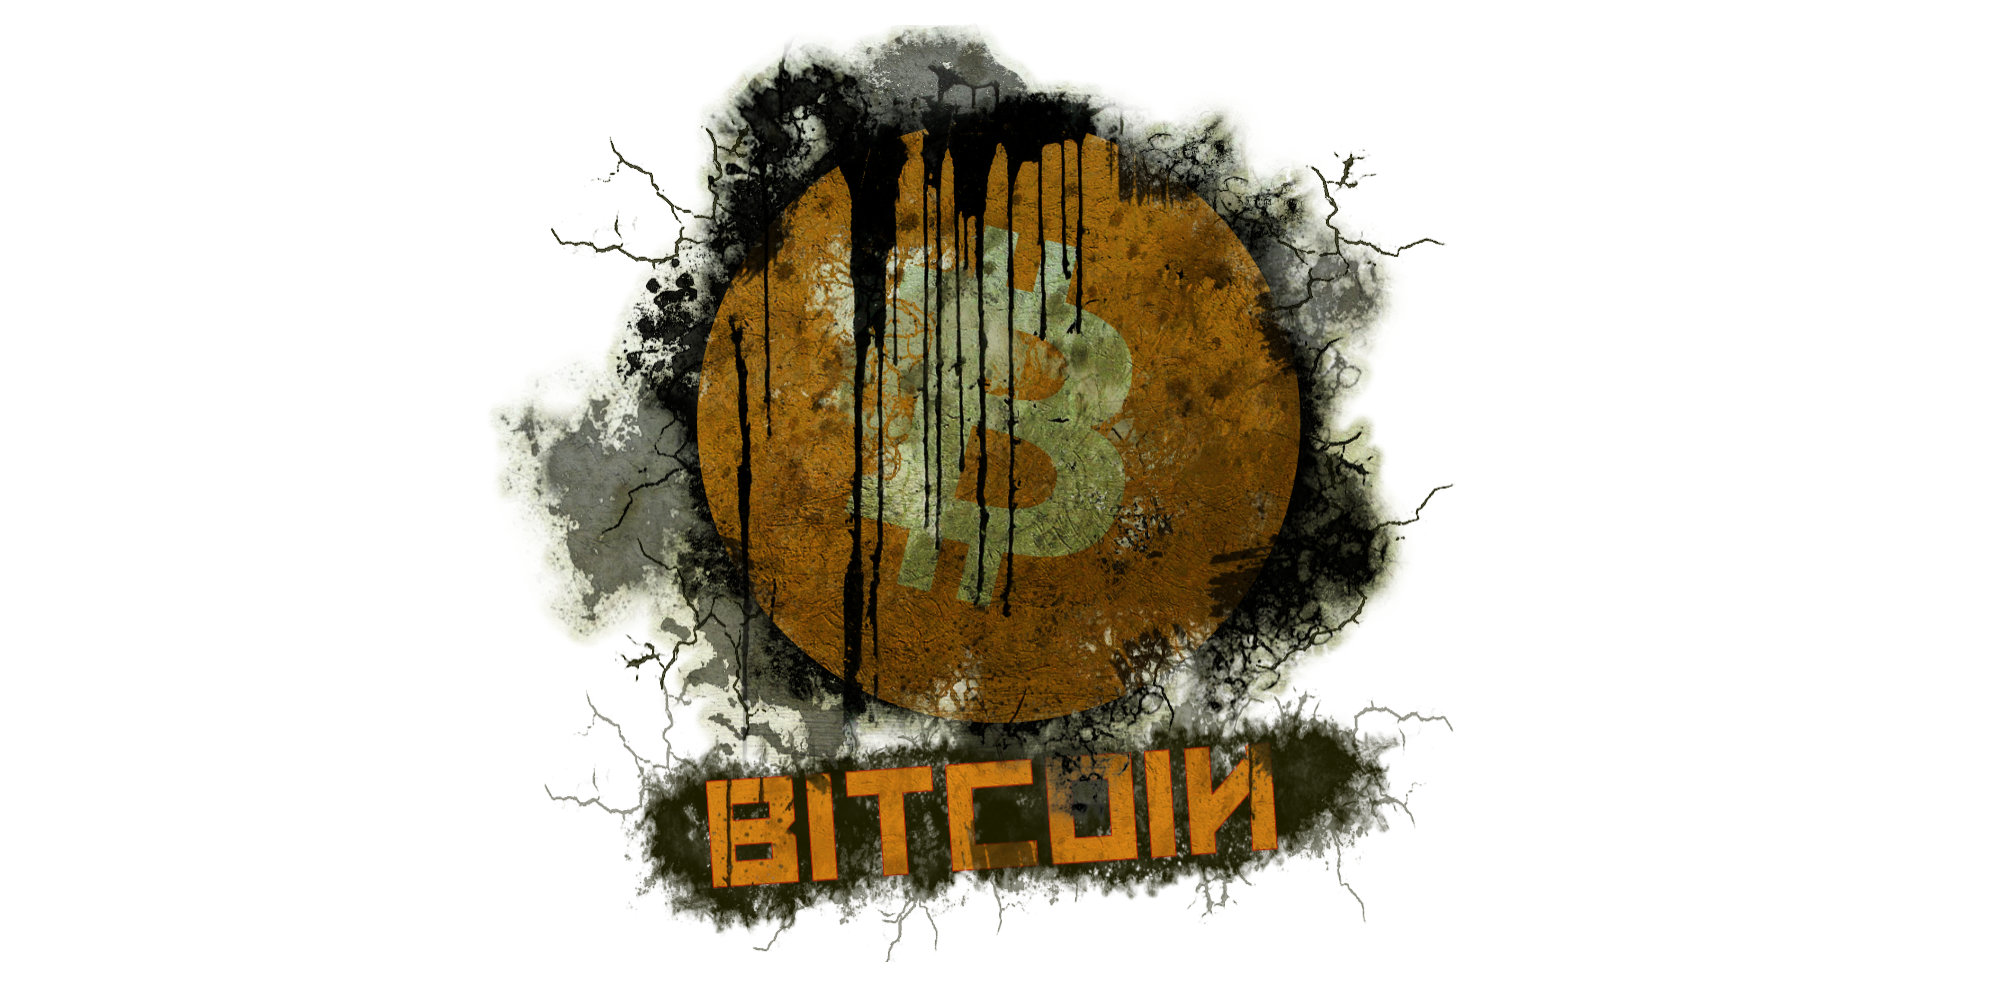 Bitcoin is not the Future of Cryptocurrencies